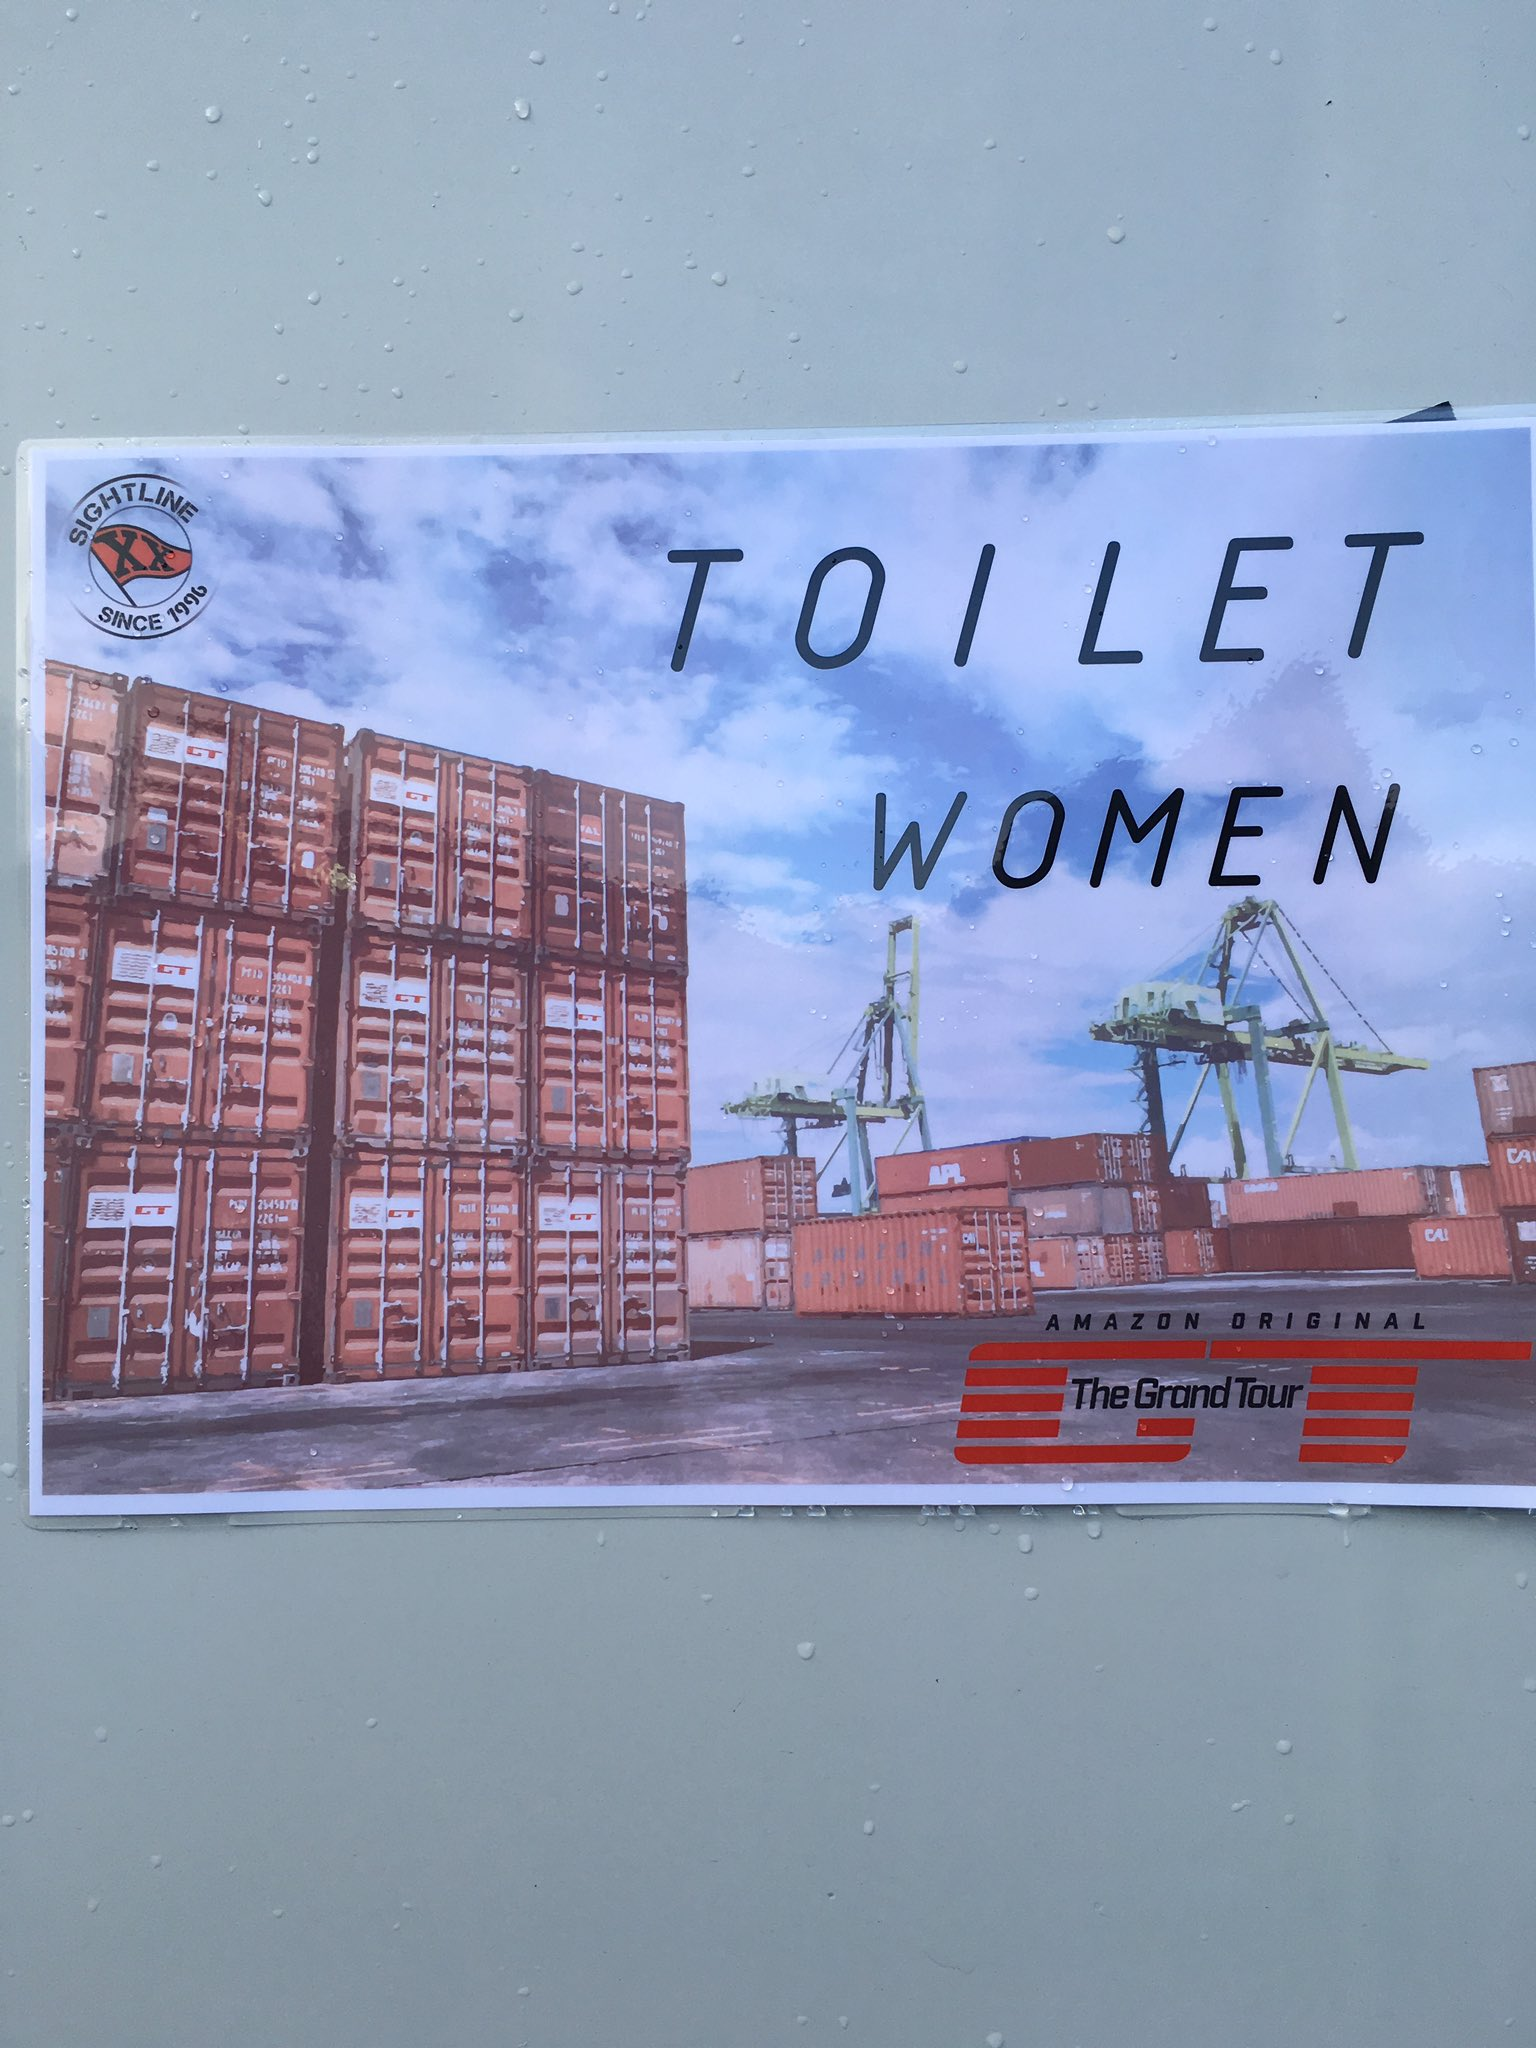 What, I wonder, is a toilet woman? https://t.co/f9QBz8Jwrp